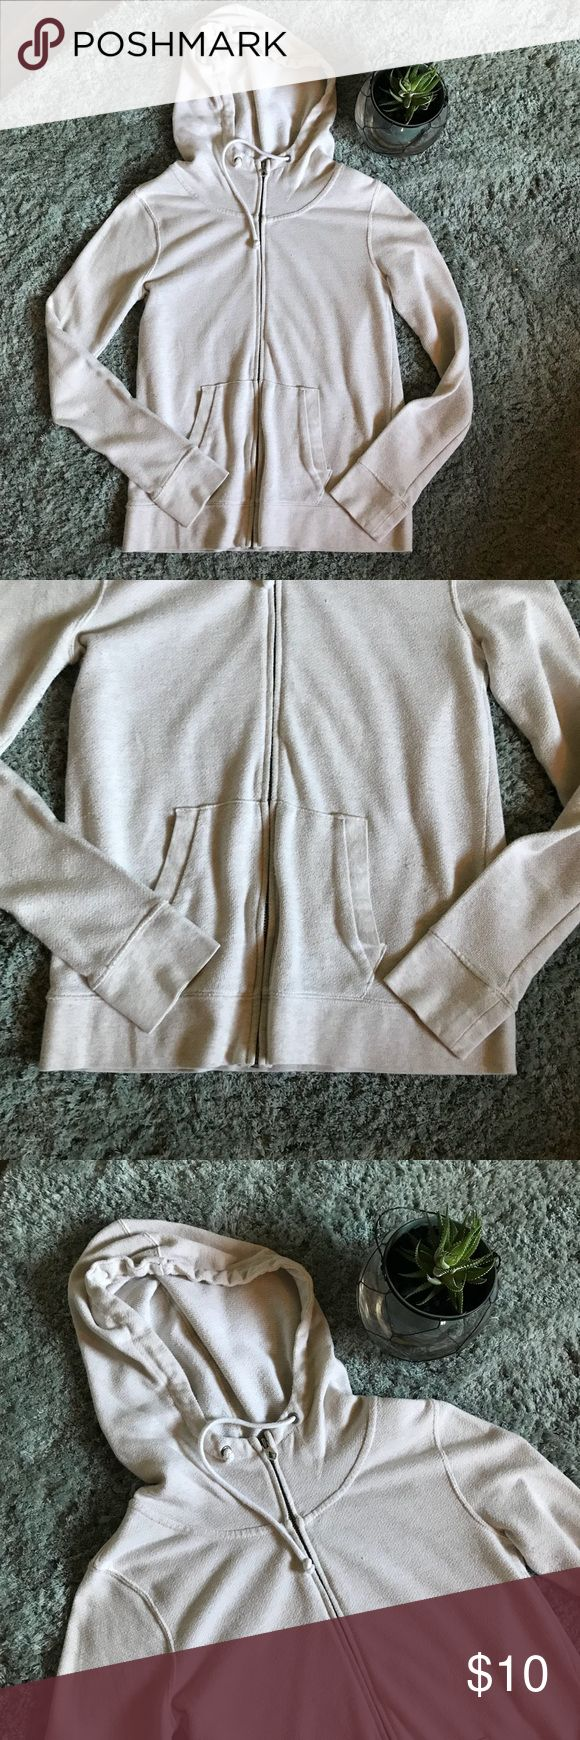 Volcom Cream Zip Up Hoodie XS In good preowned condition. Some pulling but nothing major is wrong with it. Love this hoodie but I have gotten into lululemon hoodies so just making room for those. Volcom Tops Sweatshirts & Hoodies